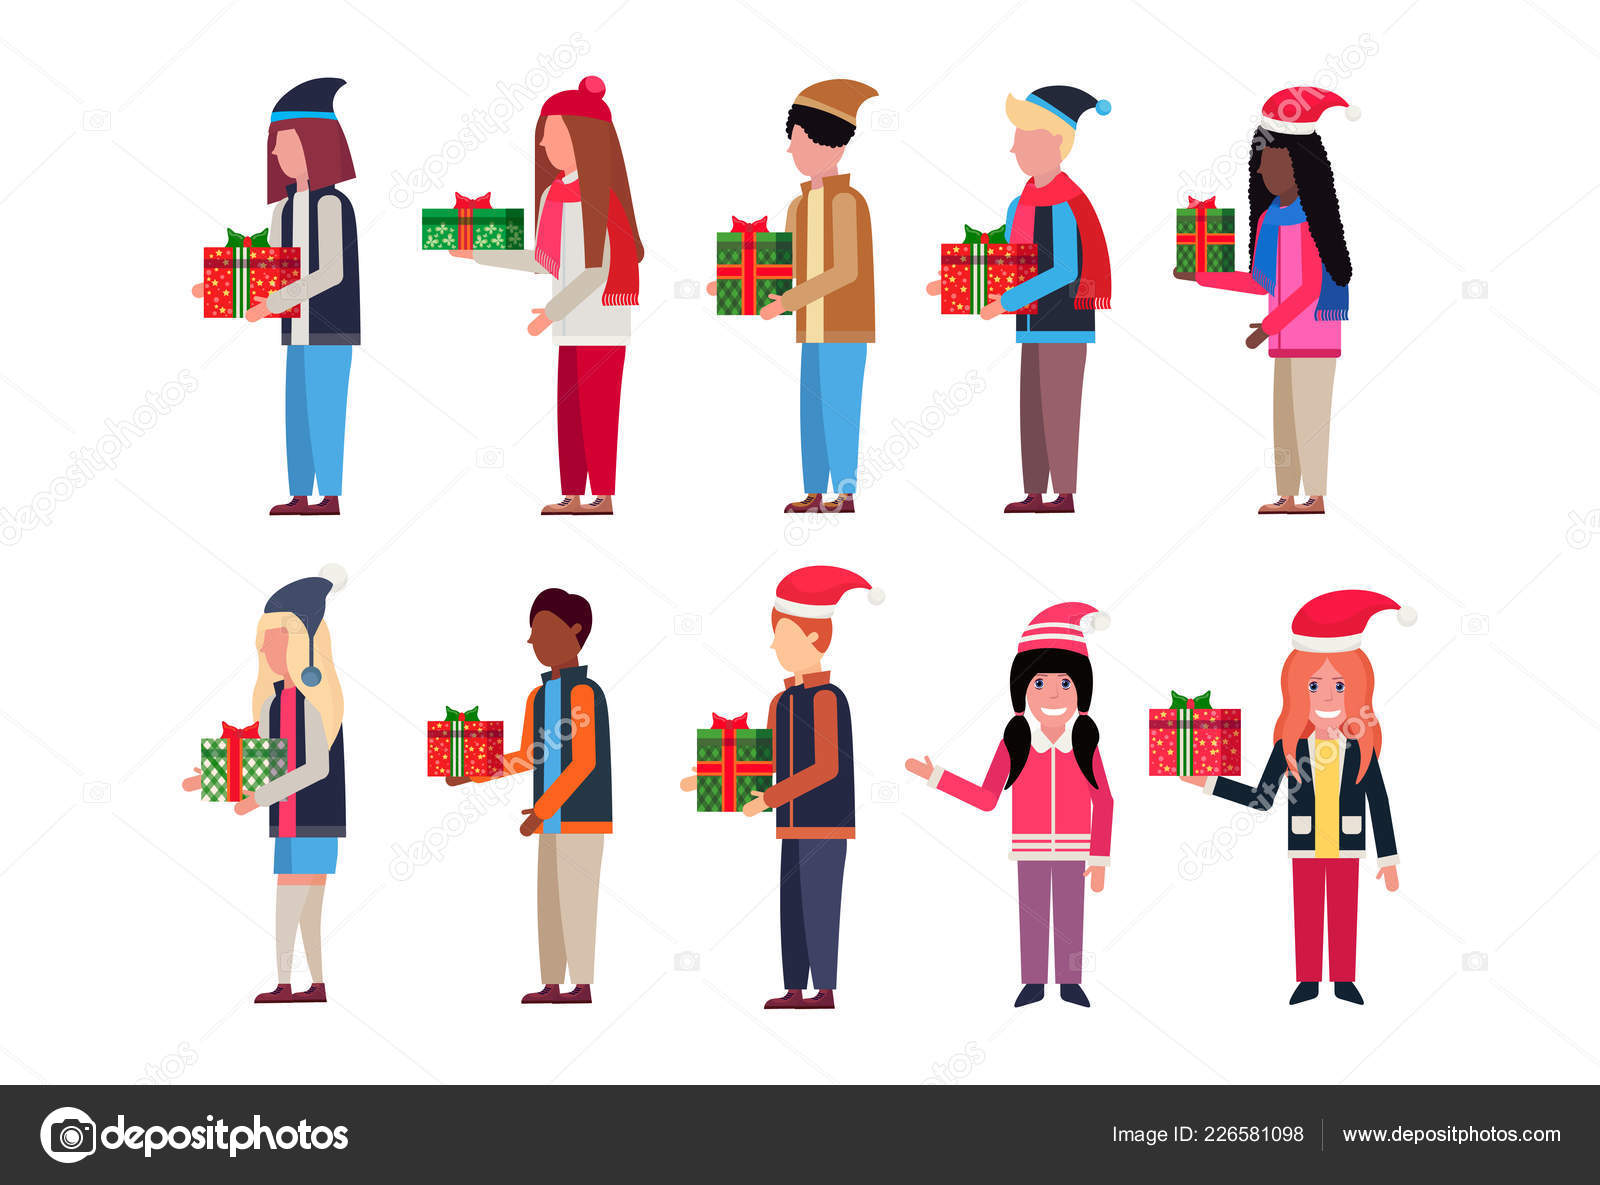 c603e5c0 ... isolated horizontal– stock illustration. Set men women hold wrapped  gift box present happy new year merry christmas concept male female